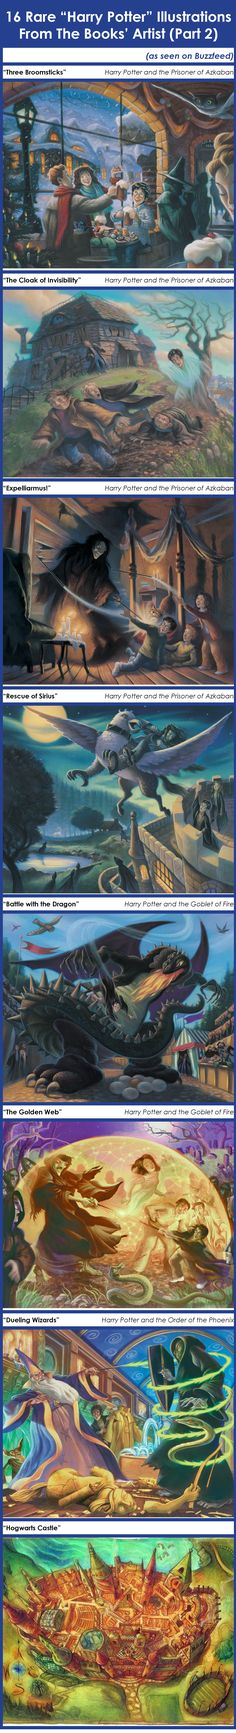 """16 Rare """"Harry Potter"""" Illustrations From Mary GrandPre (PART 2) // I pulled this from a Buzzfeed article and put all the pictures on one page so you could witness it in all its glory!"""